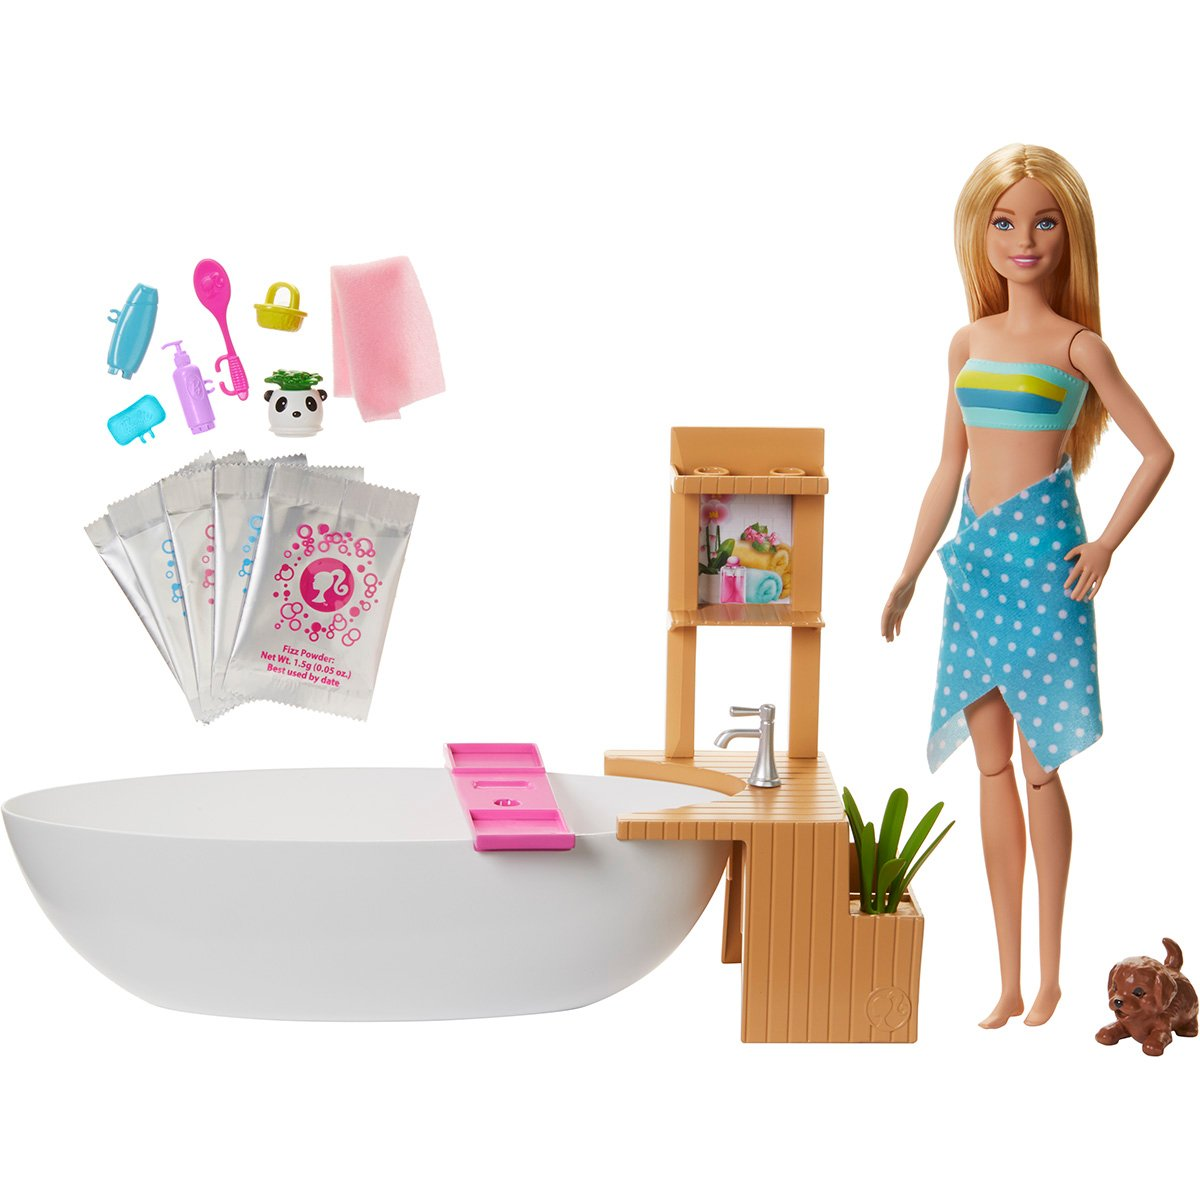 Set de joaca Barbie, Relaxarea in cada